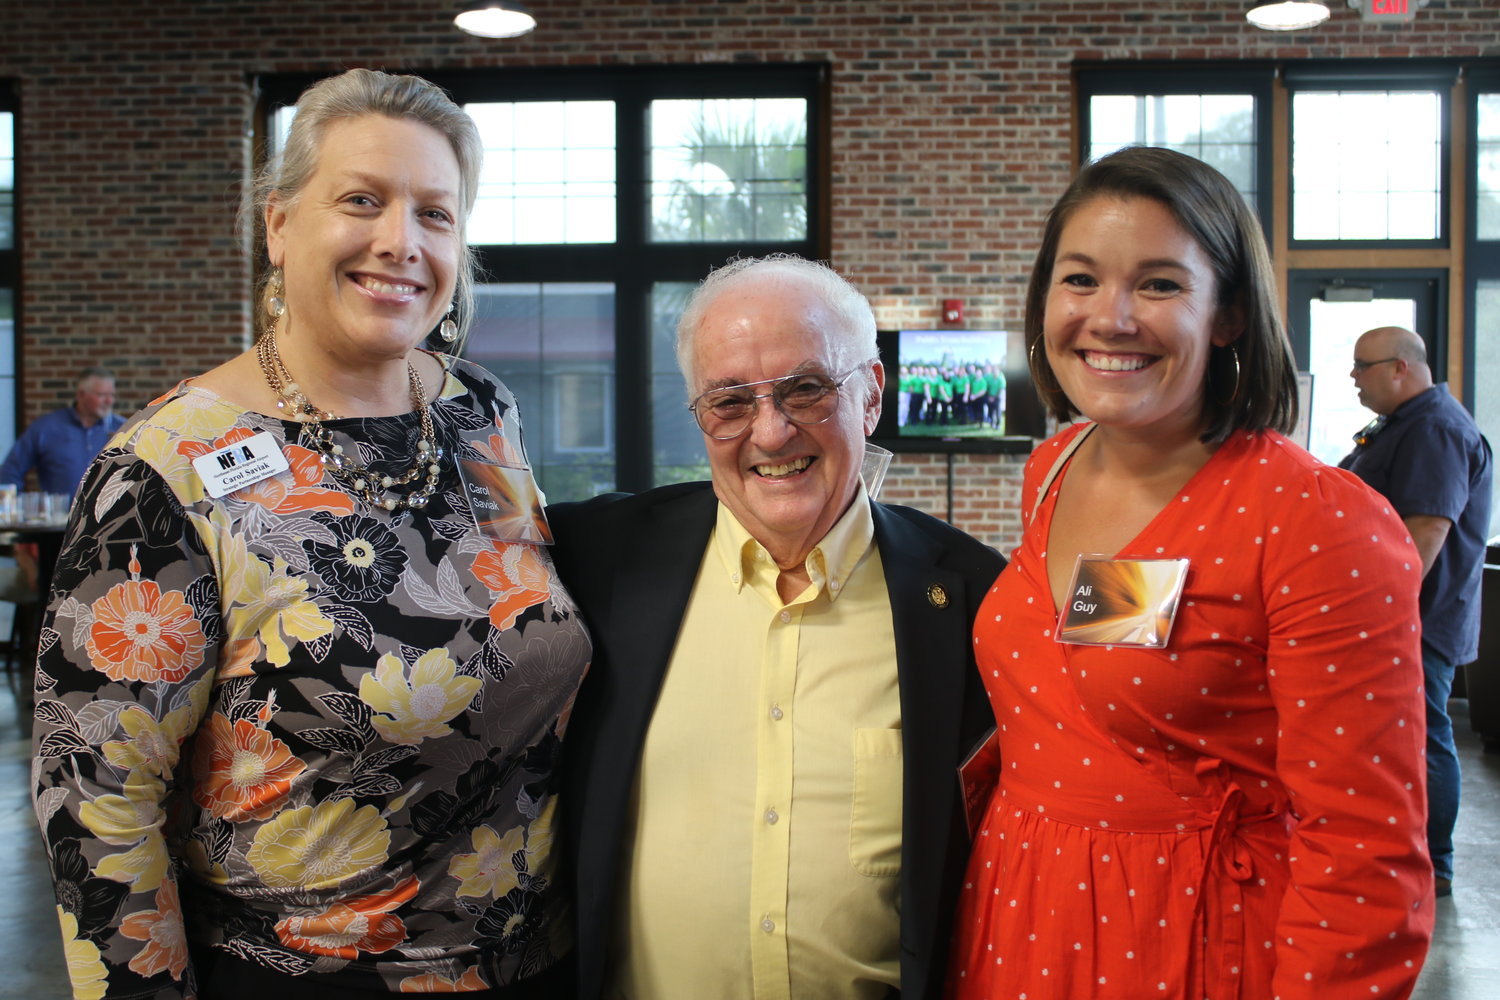 Carol Saviak, strategic partnerships manager at St. Augustine-St. Johns County Airport Authority, Bill Mignon, St. Johns County School Board member, and Ali Guy, account manager at Design Extensions, stop to pose for a photo at the United Way-SJC event.